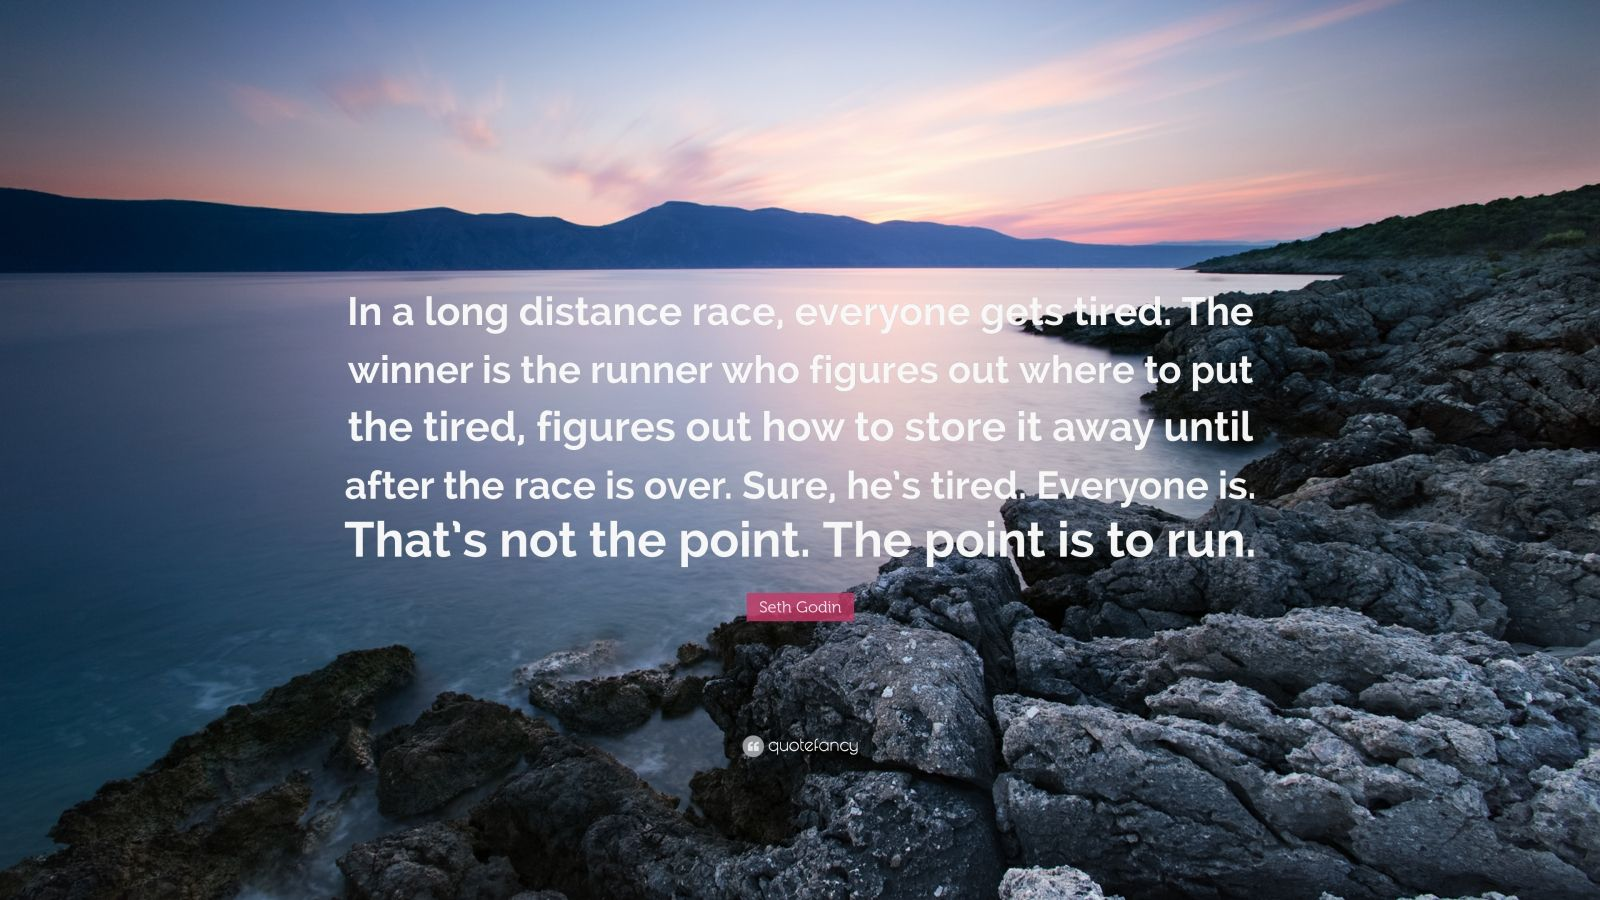 """Seth Godin Quote: """"In a long distance race, everyone gets tired. The winner is the runner who figures out where to put the tired, figures out how to store it away until after the race is over. Sure, he's tired. Everyone is. That's not the point. The point is to run."""""""